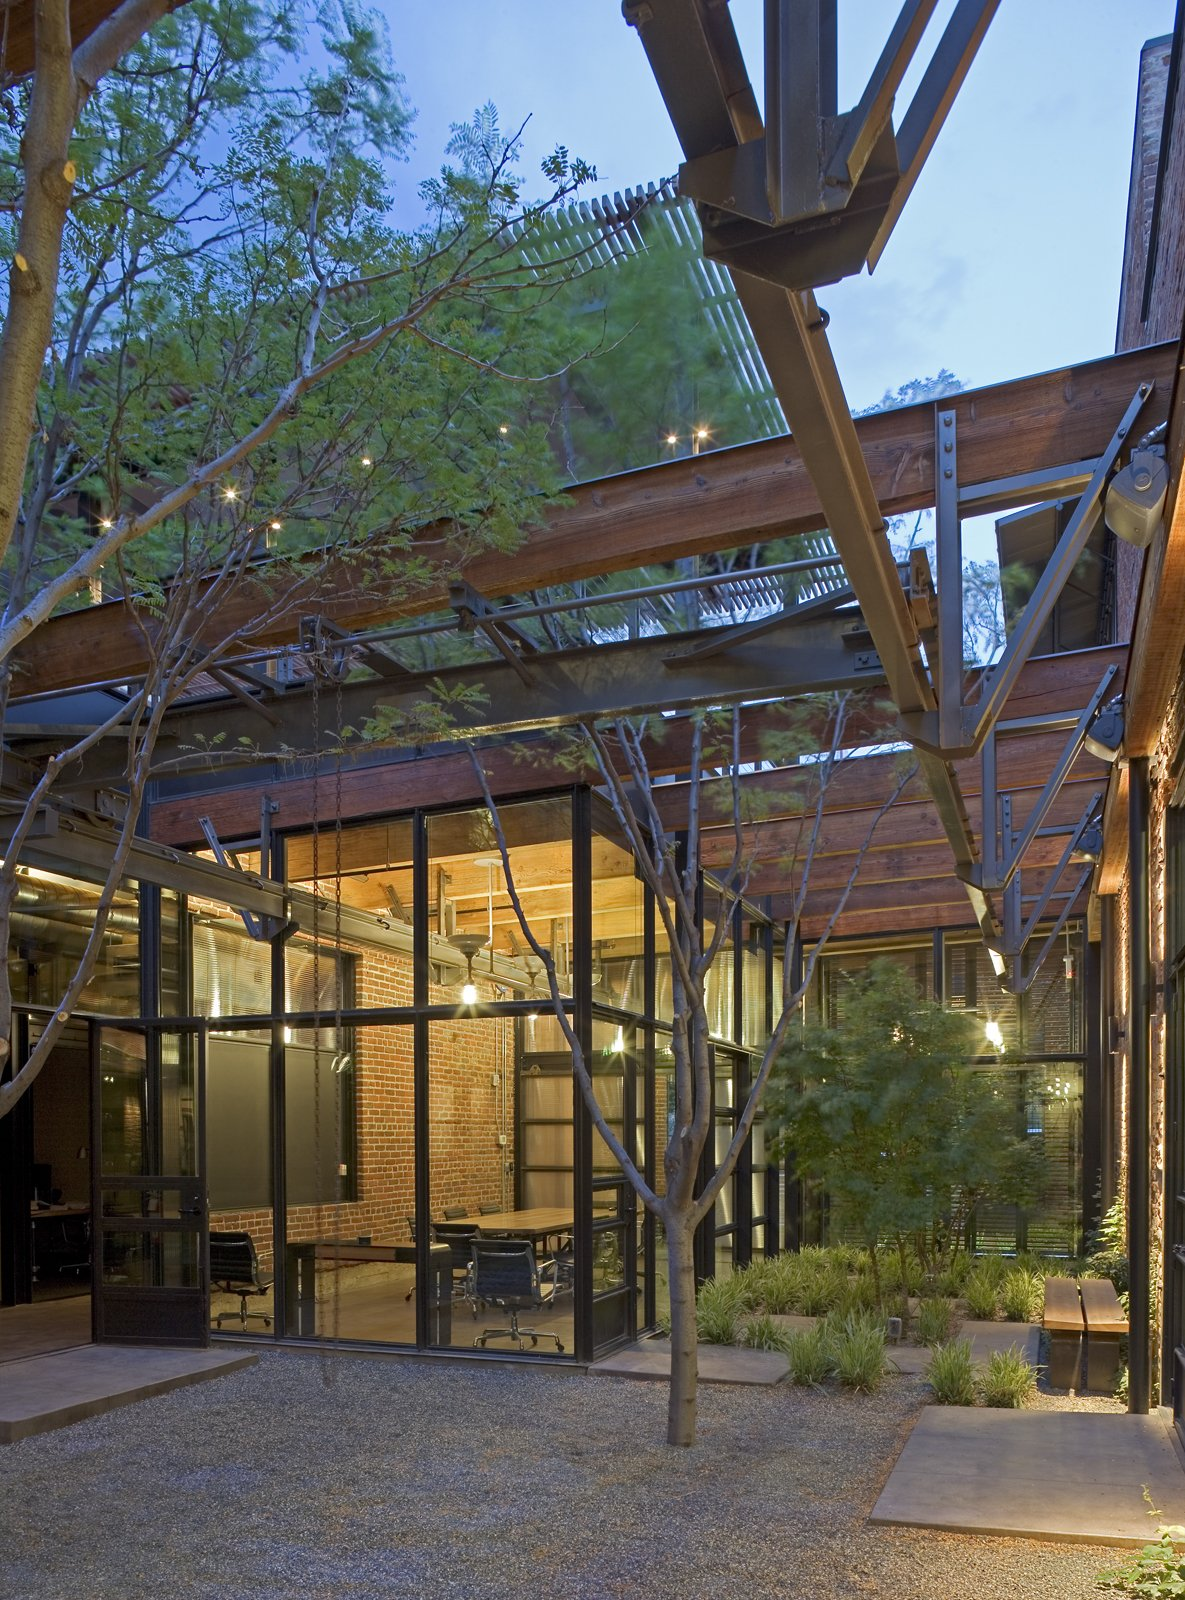 Armstrong Oil and Gas in Denver, Colorado. Designed by Lake|Flato Architects. Winner of the 2011 Institute Honor Award for Interior Architecture. Project description:  Photo 6 of 10 in 9 Inspirational Examples of Adaptive Reuse